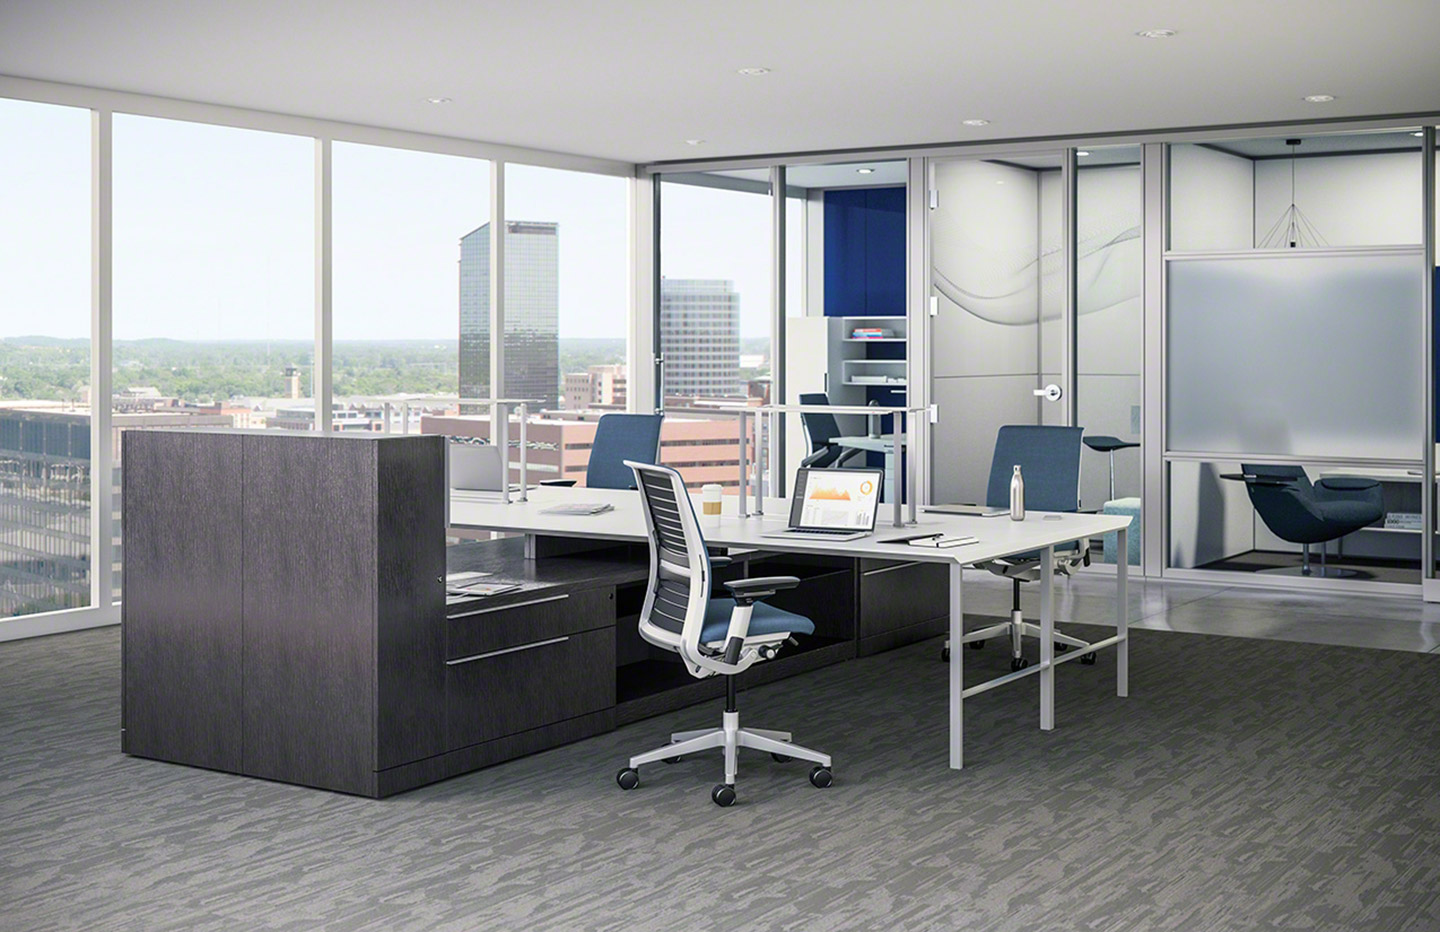 5 Reasons You Need a WellDesigned Office Space  Office